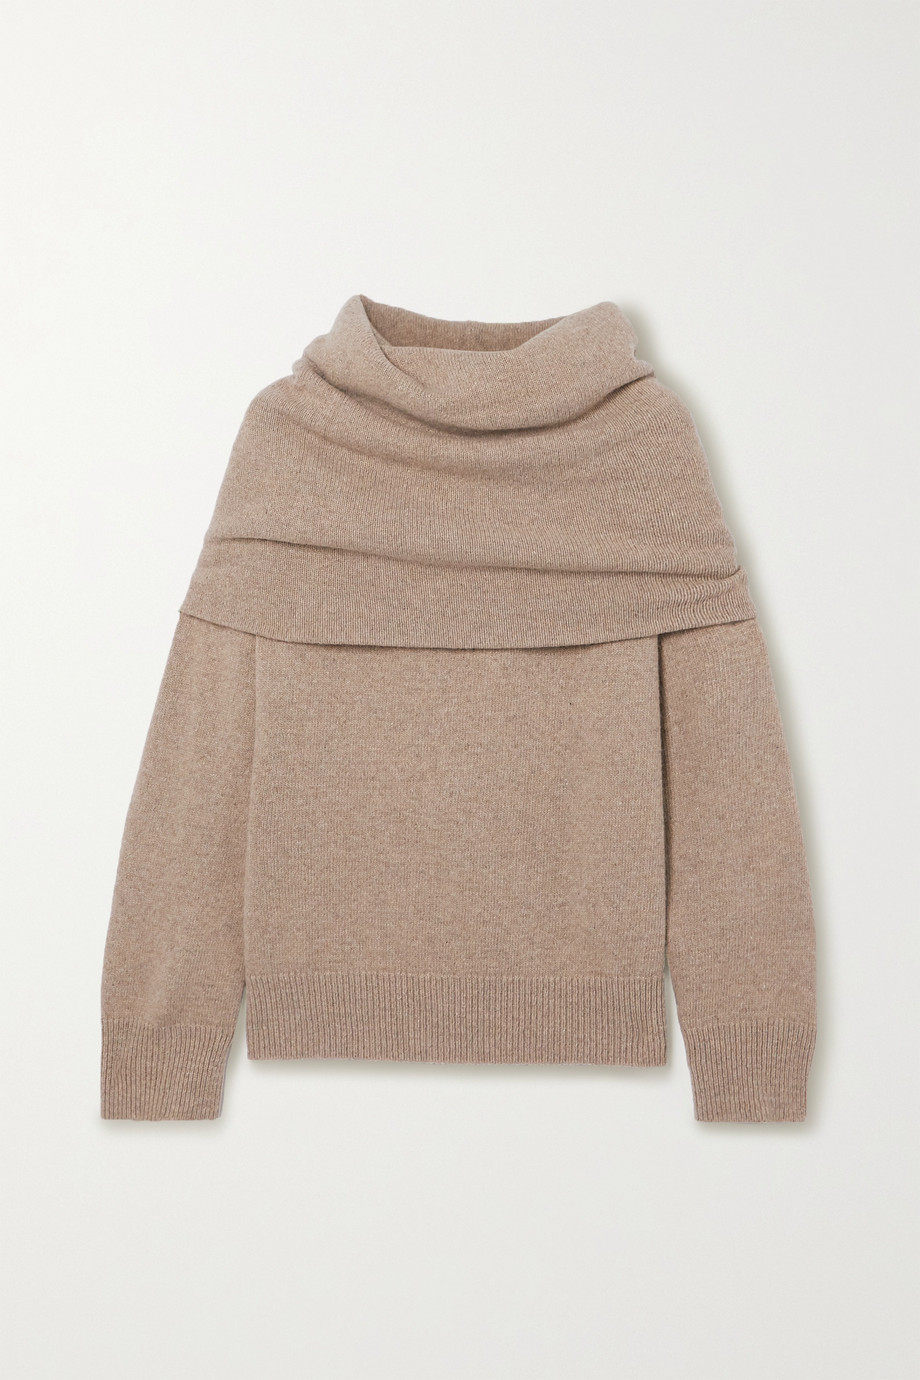 Frankie Shop Oversized hooded sweater